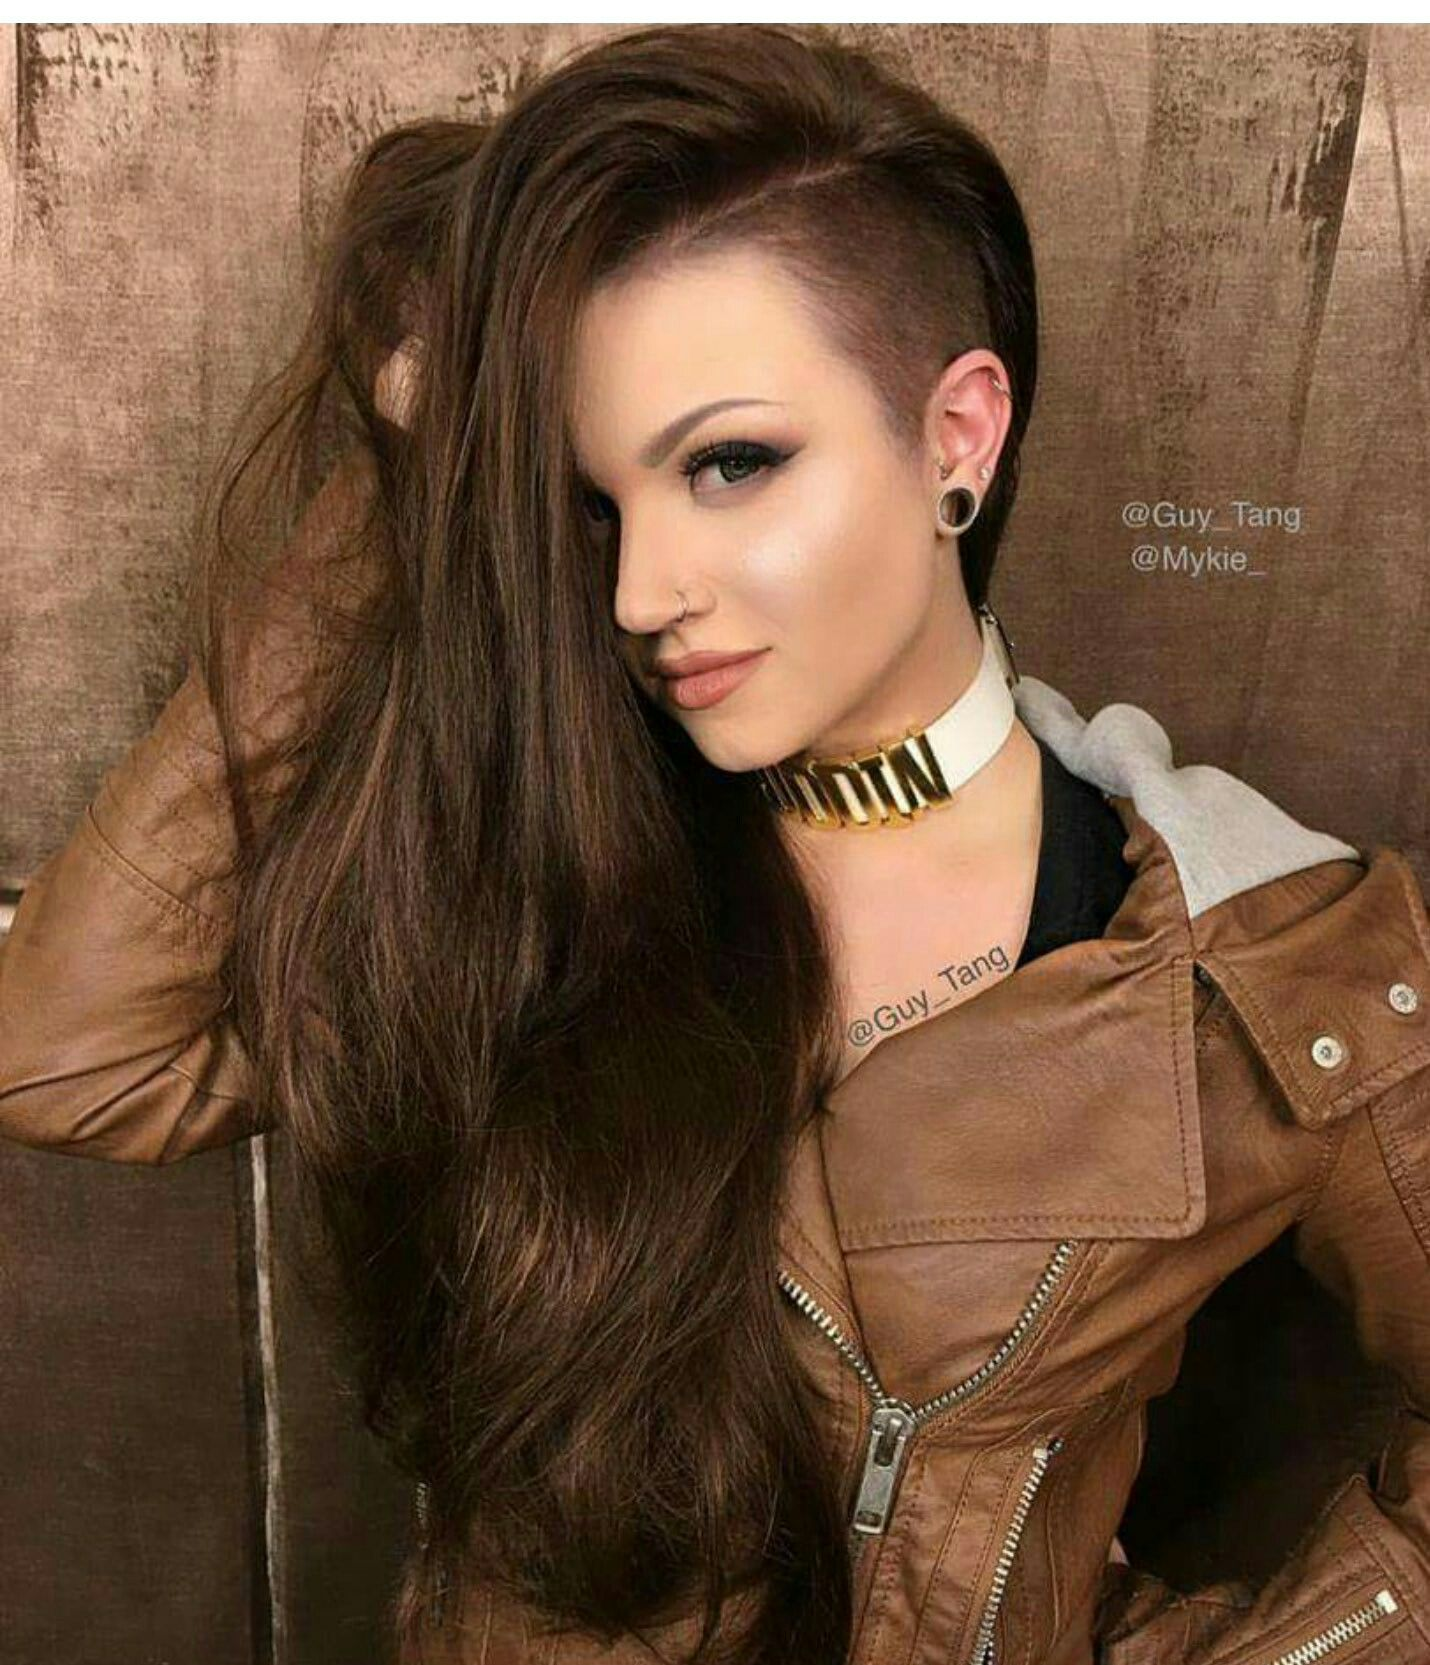 Mykie glam and gore guy tang brown side shave hair hairstyle hair